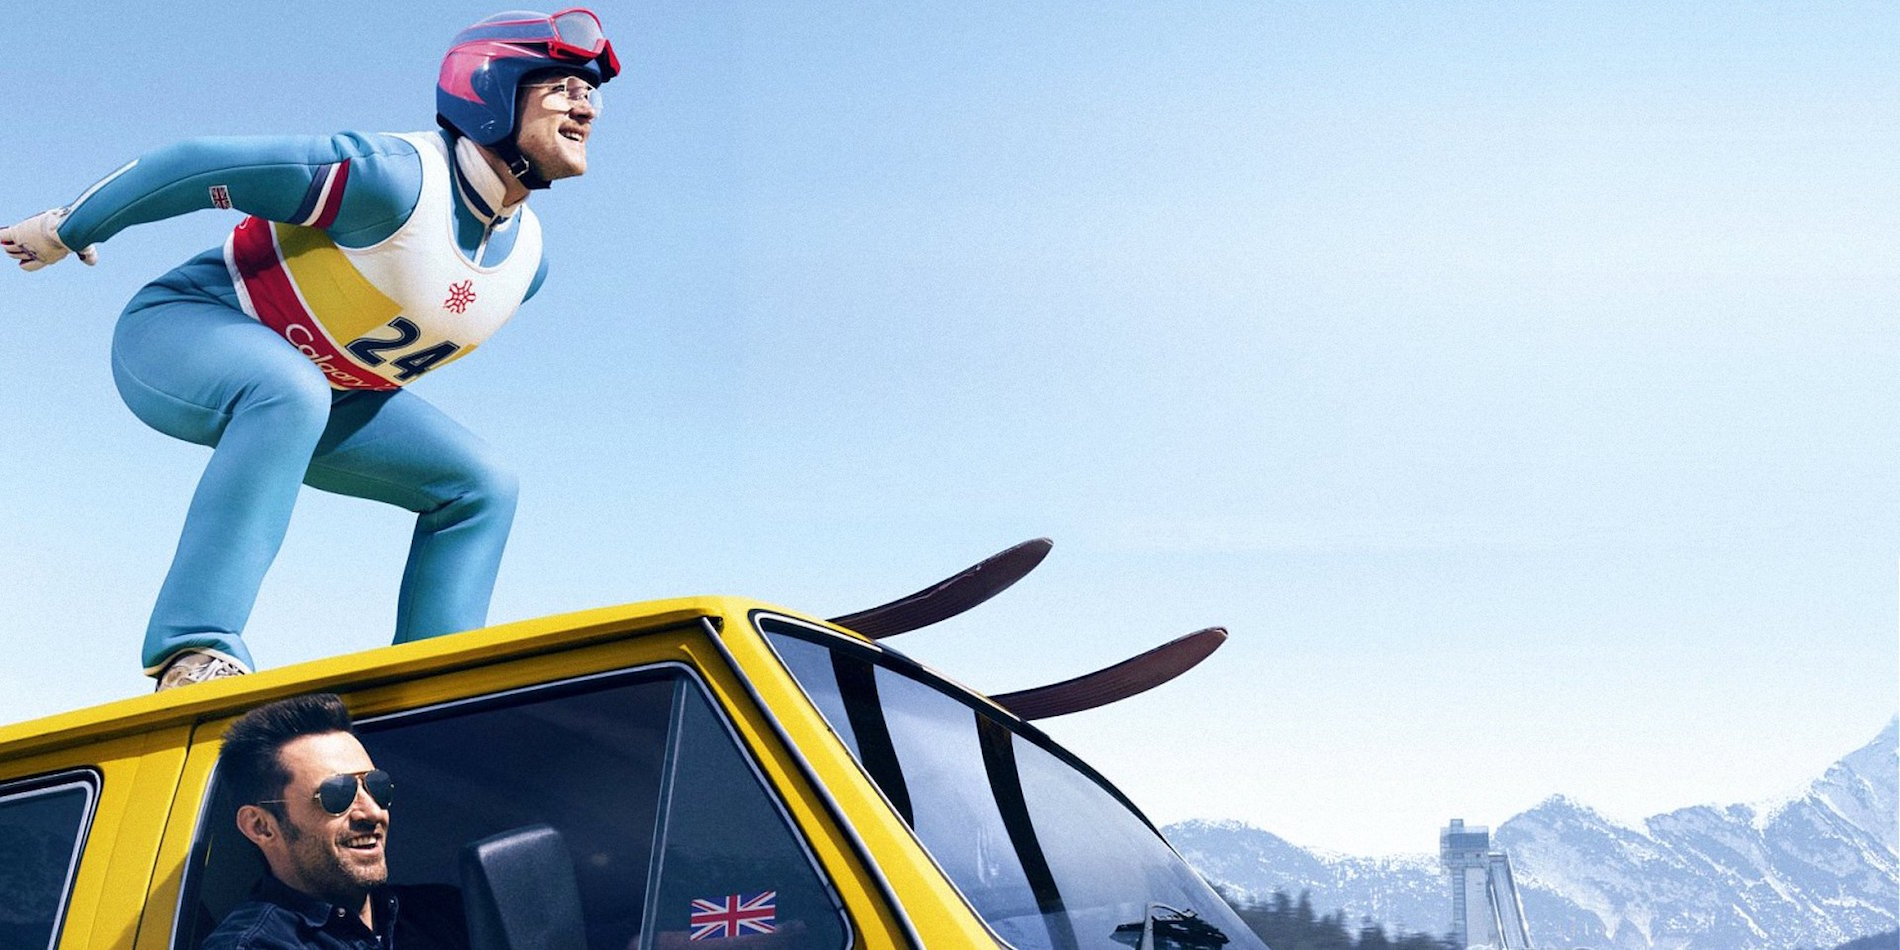 Eddie the Eagle Wallpapers